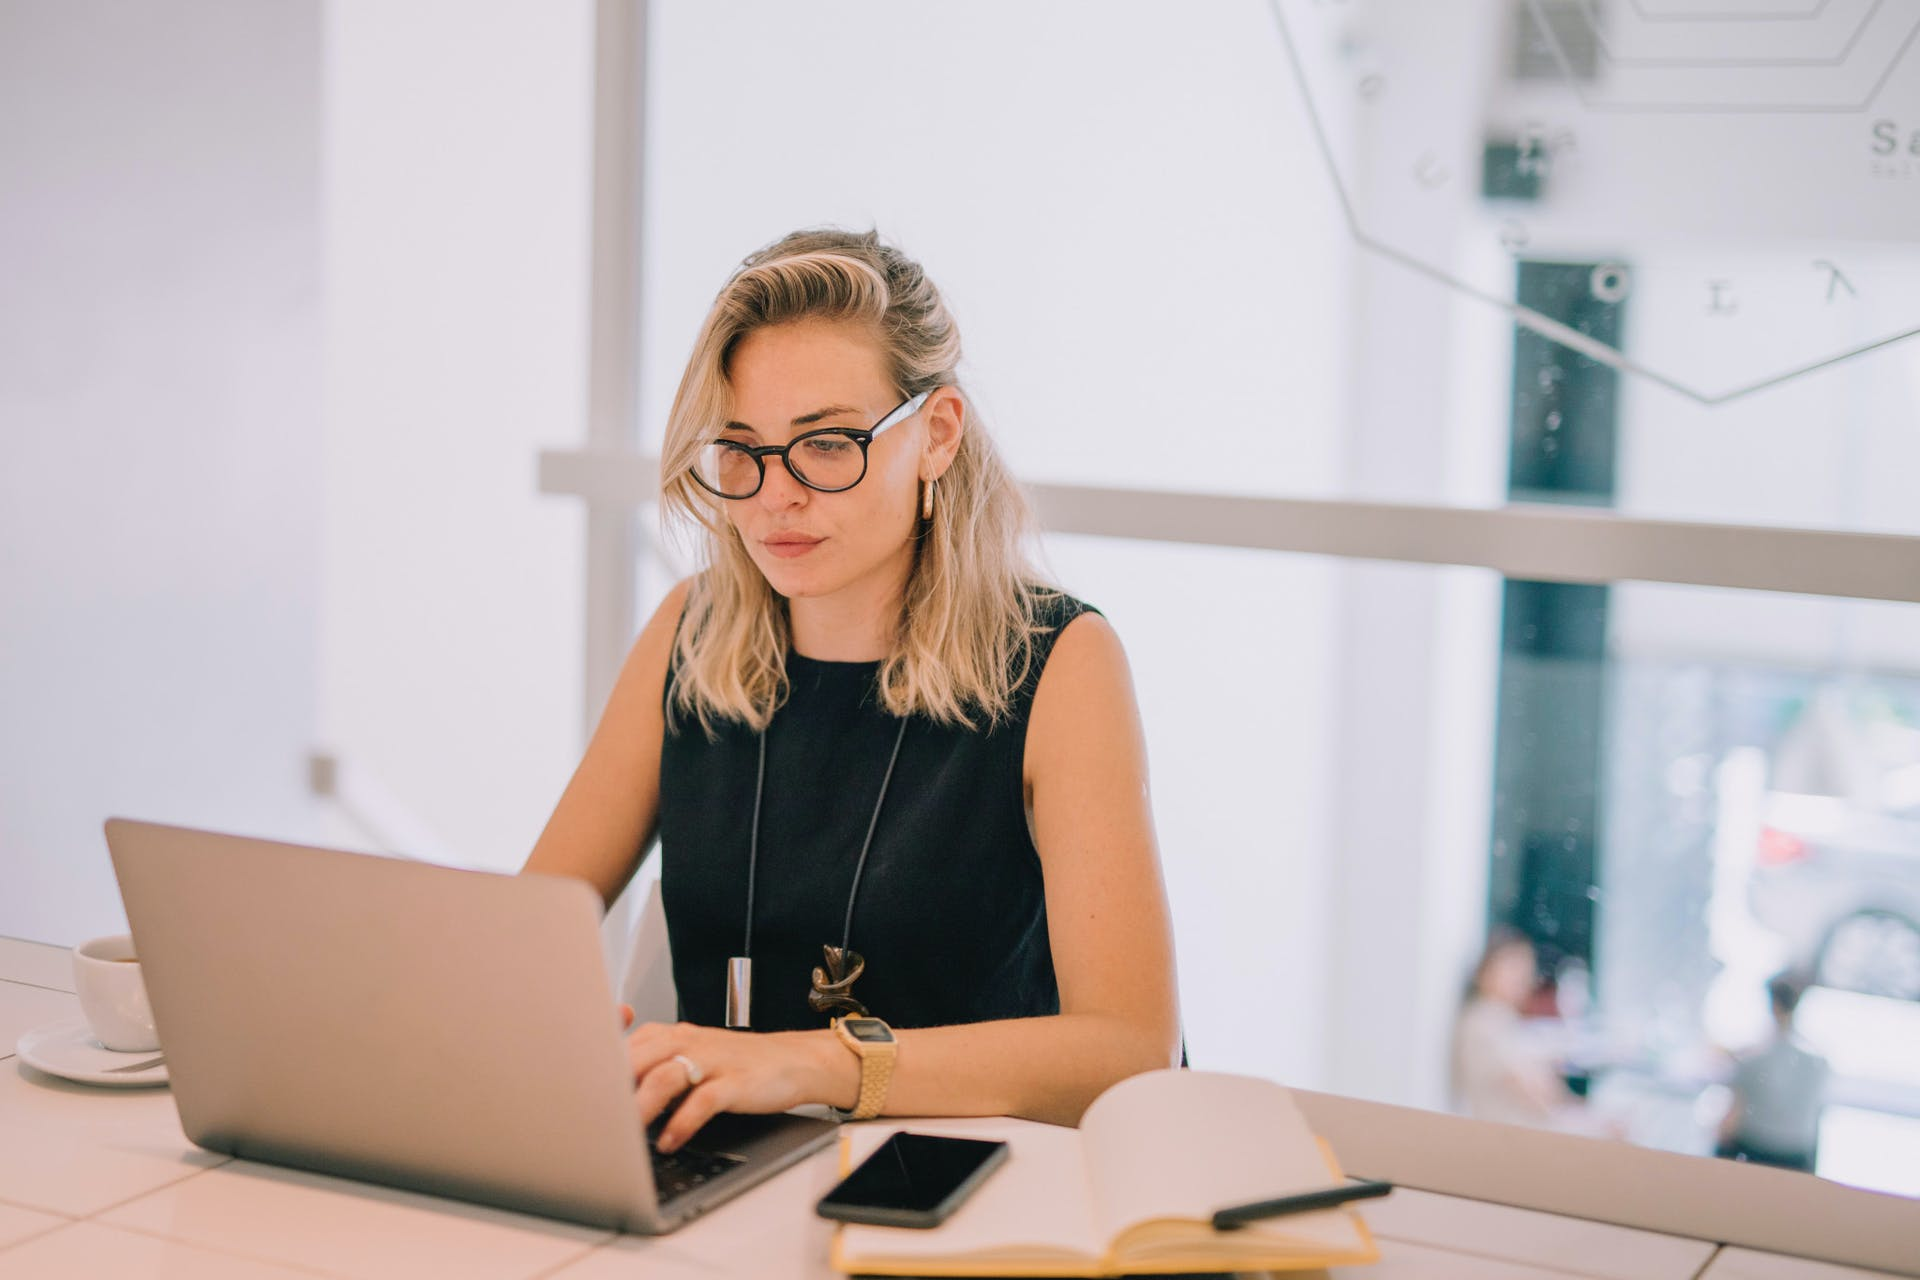 influencer management while working remotely from home